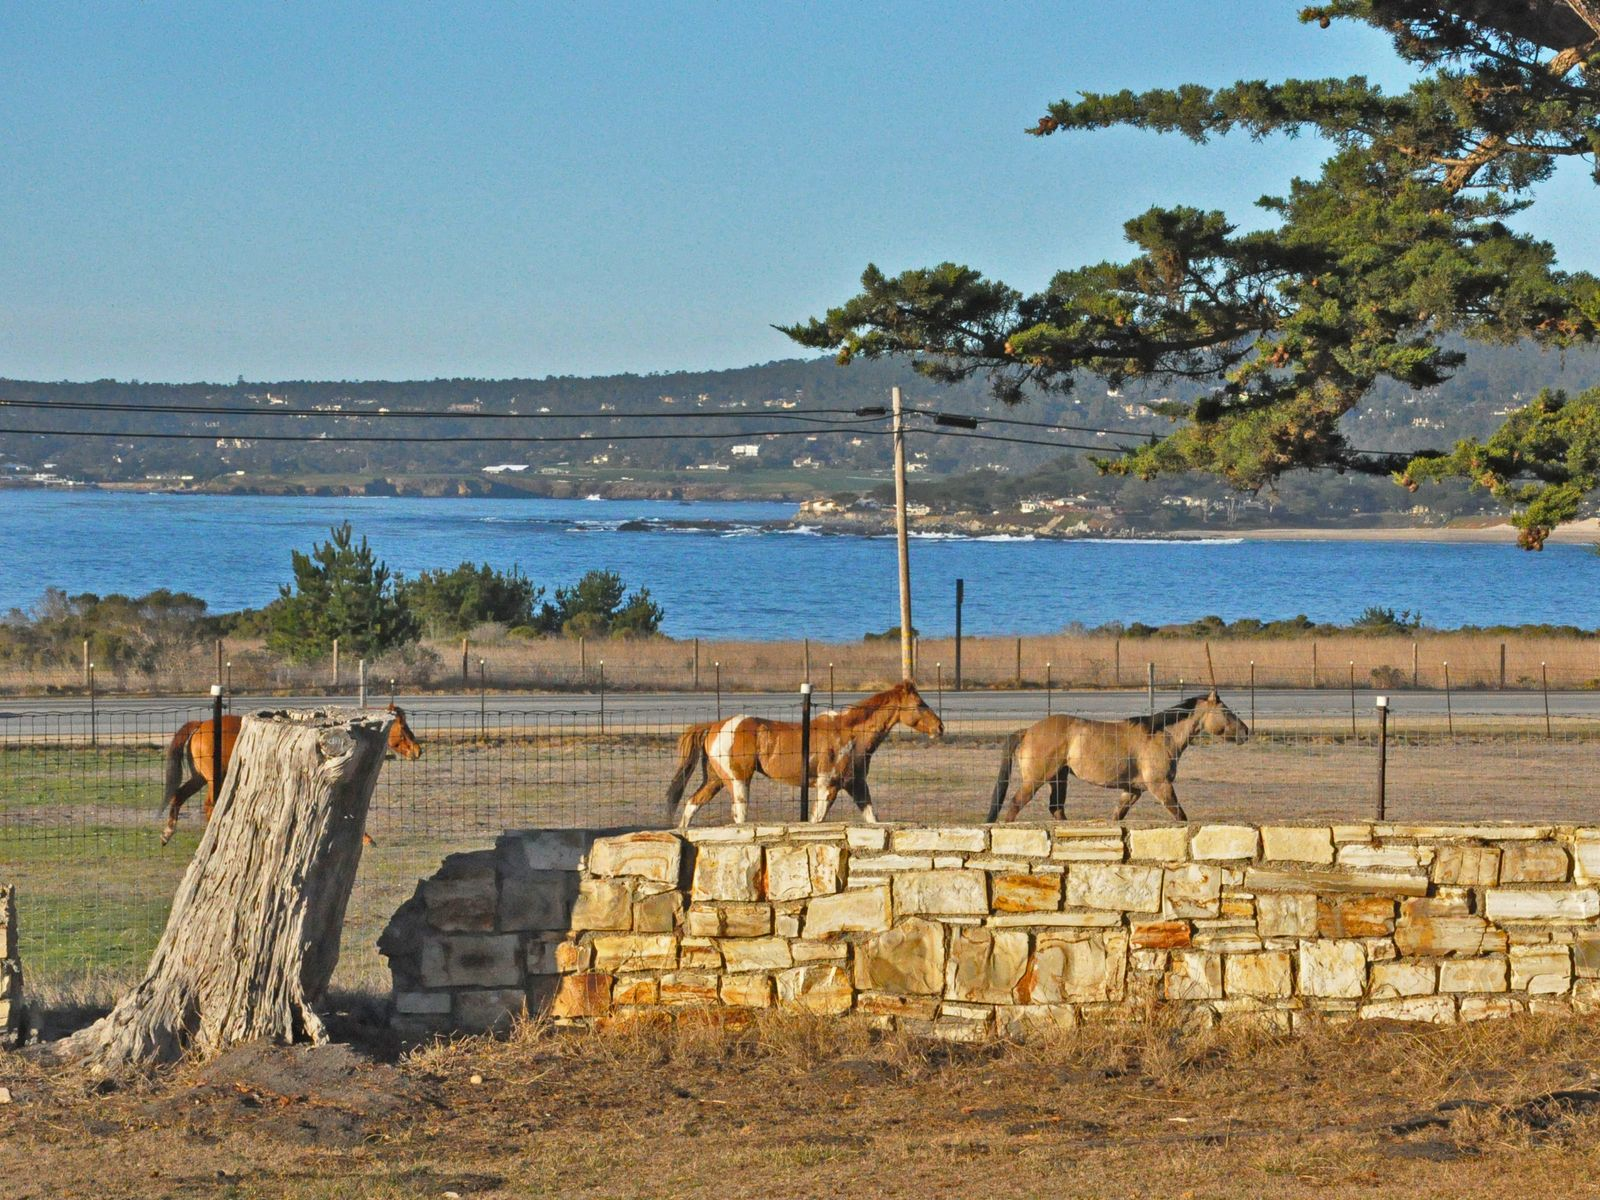 The Stone House at Point Lobos